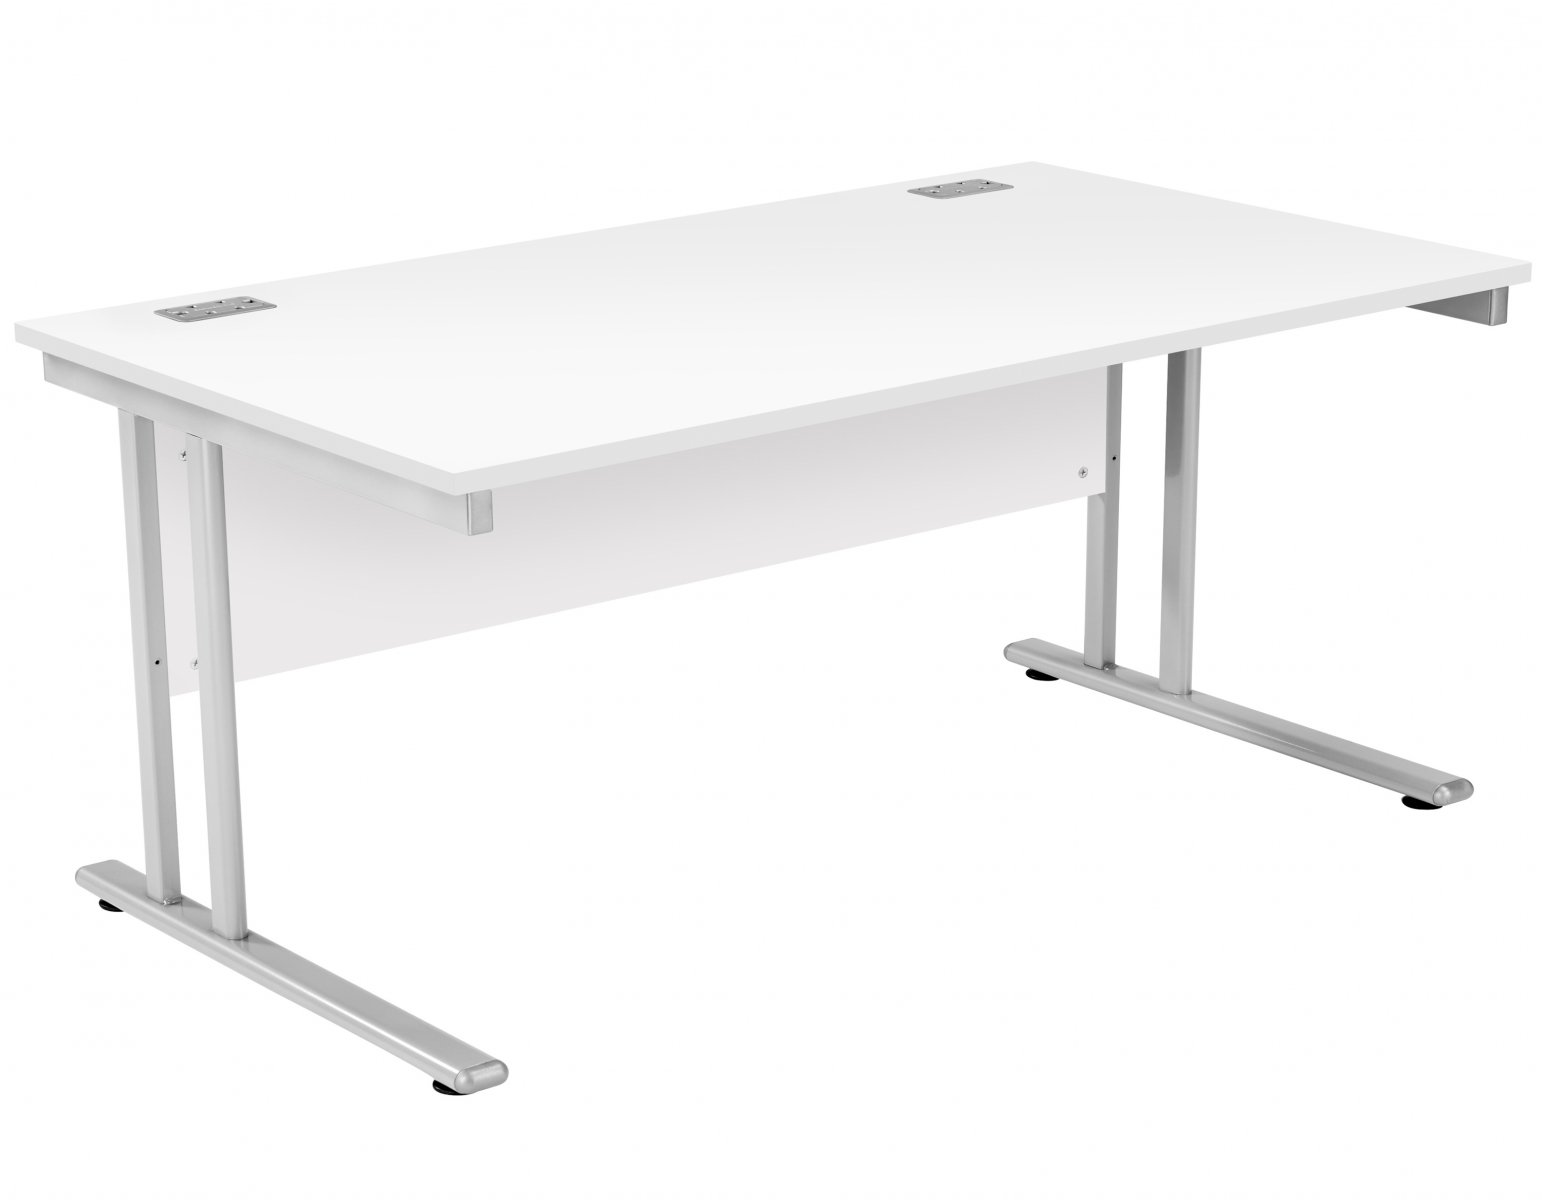 Fraction 2 Rectangular 160 Desk - White with Silver Frame